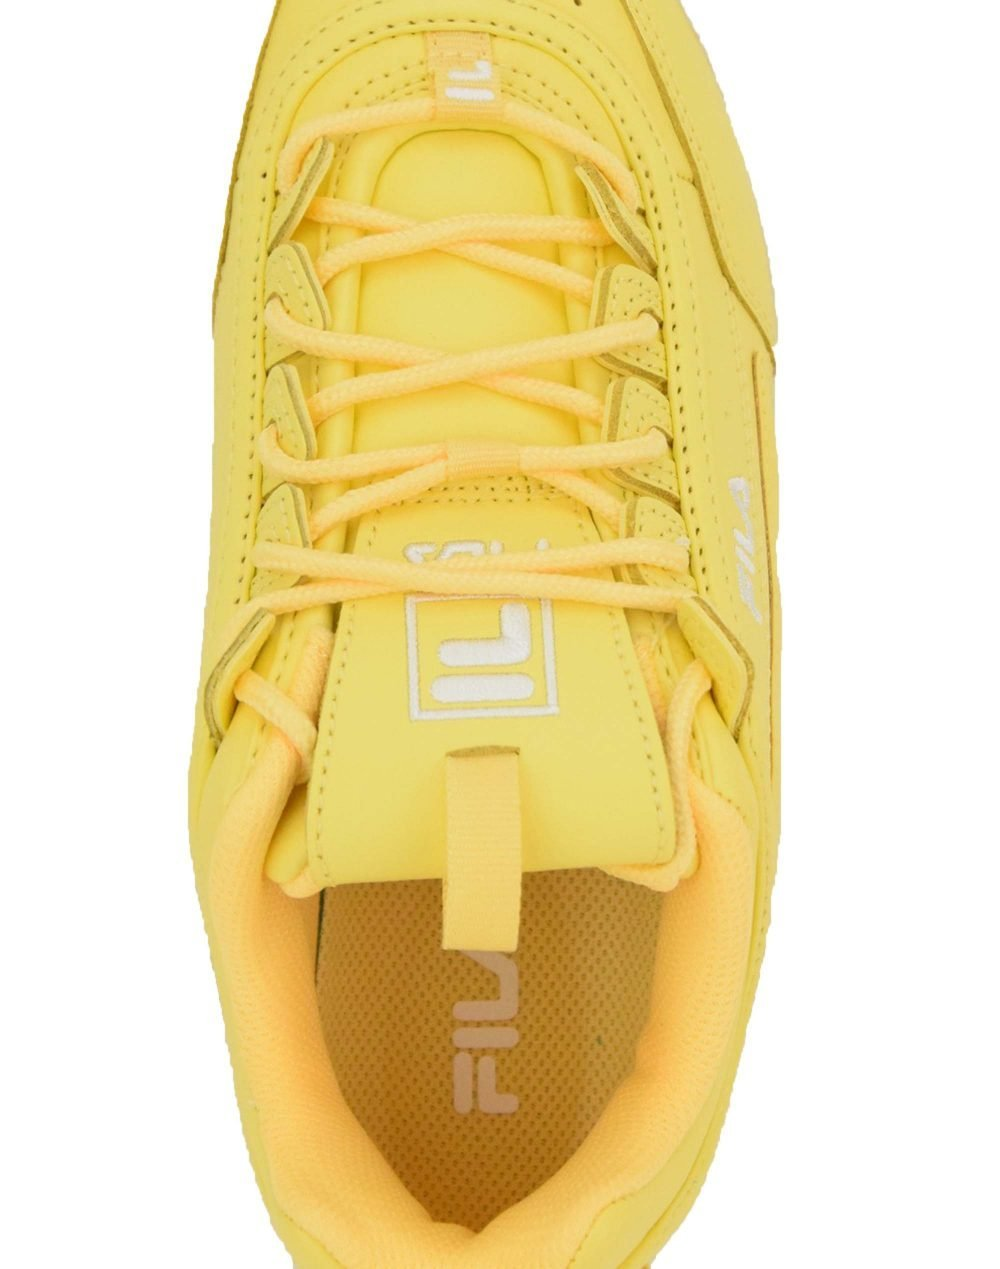 Fila Disruptor II Premium (5XM01296-720) Gold Finish/White